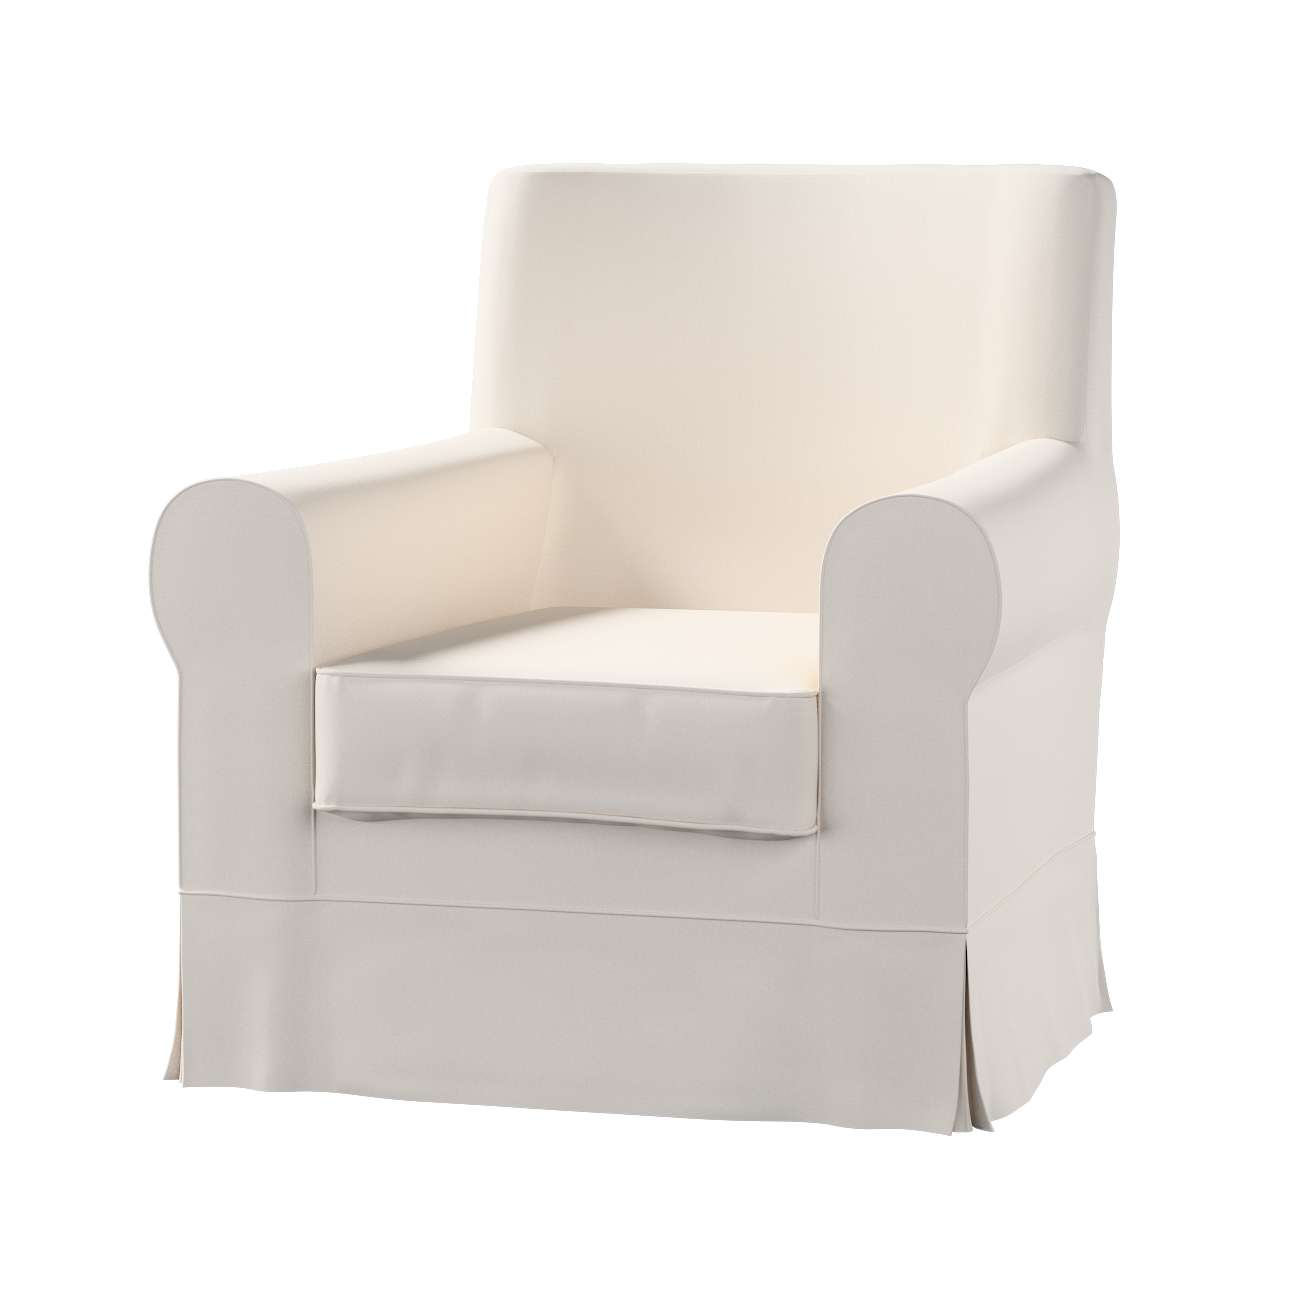 ikea tullsta chair covers uk sam maloof rocking plans ektorp sofa and furniture - dekoria.co.uk